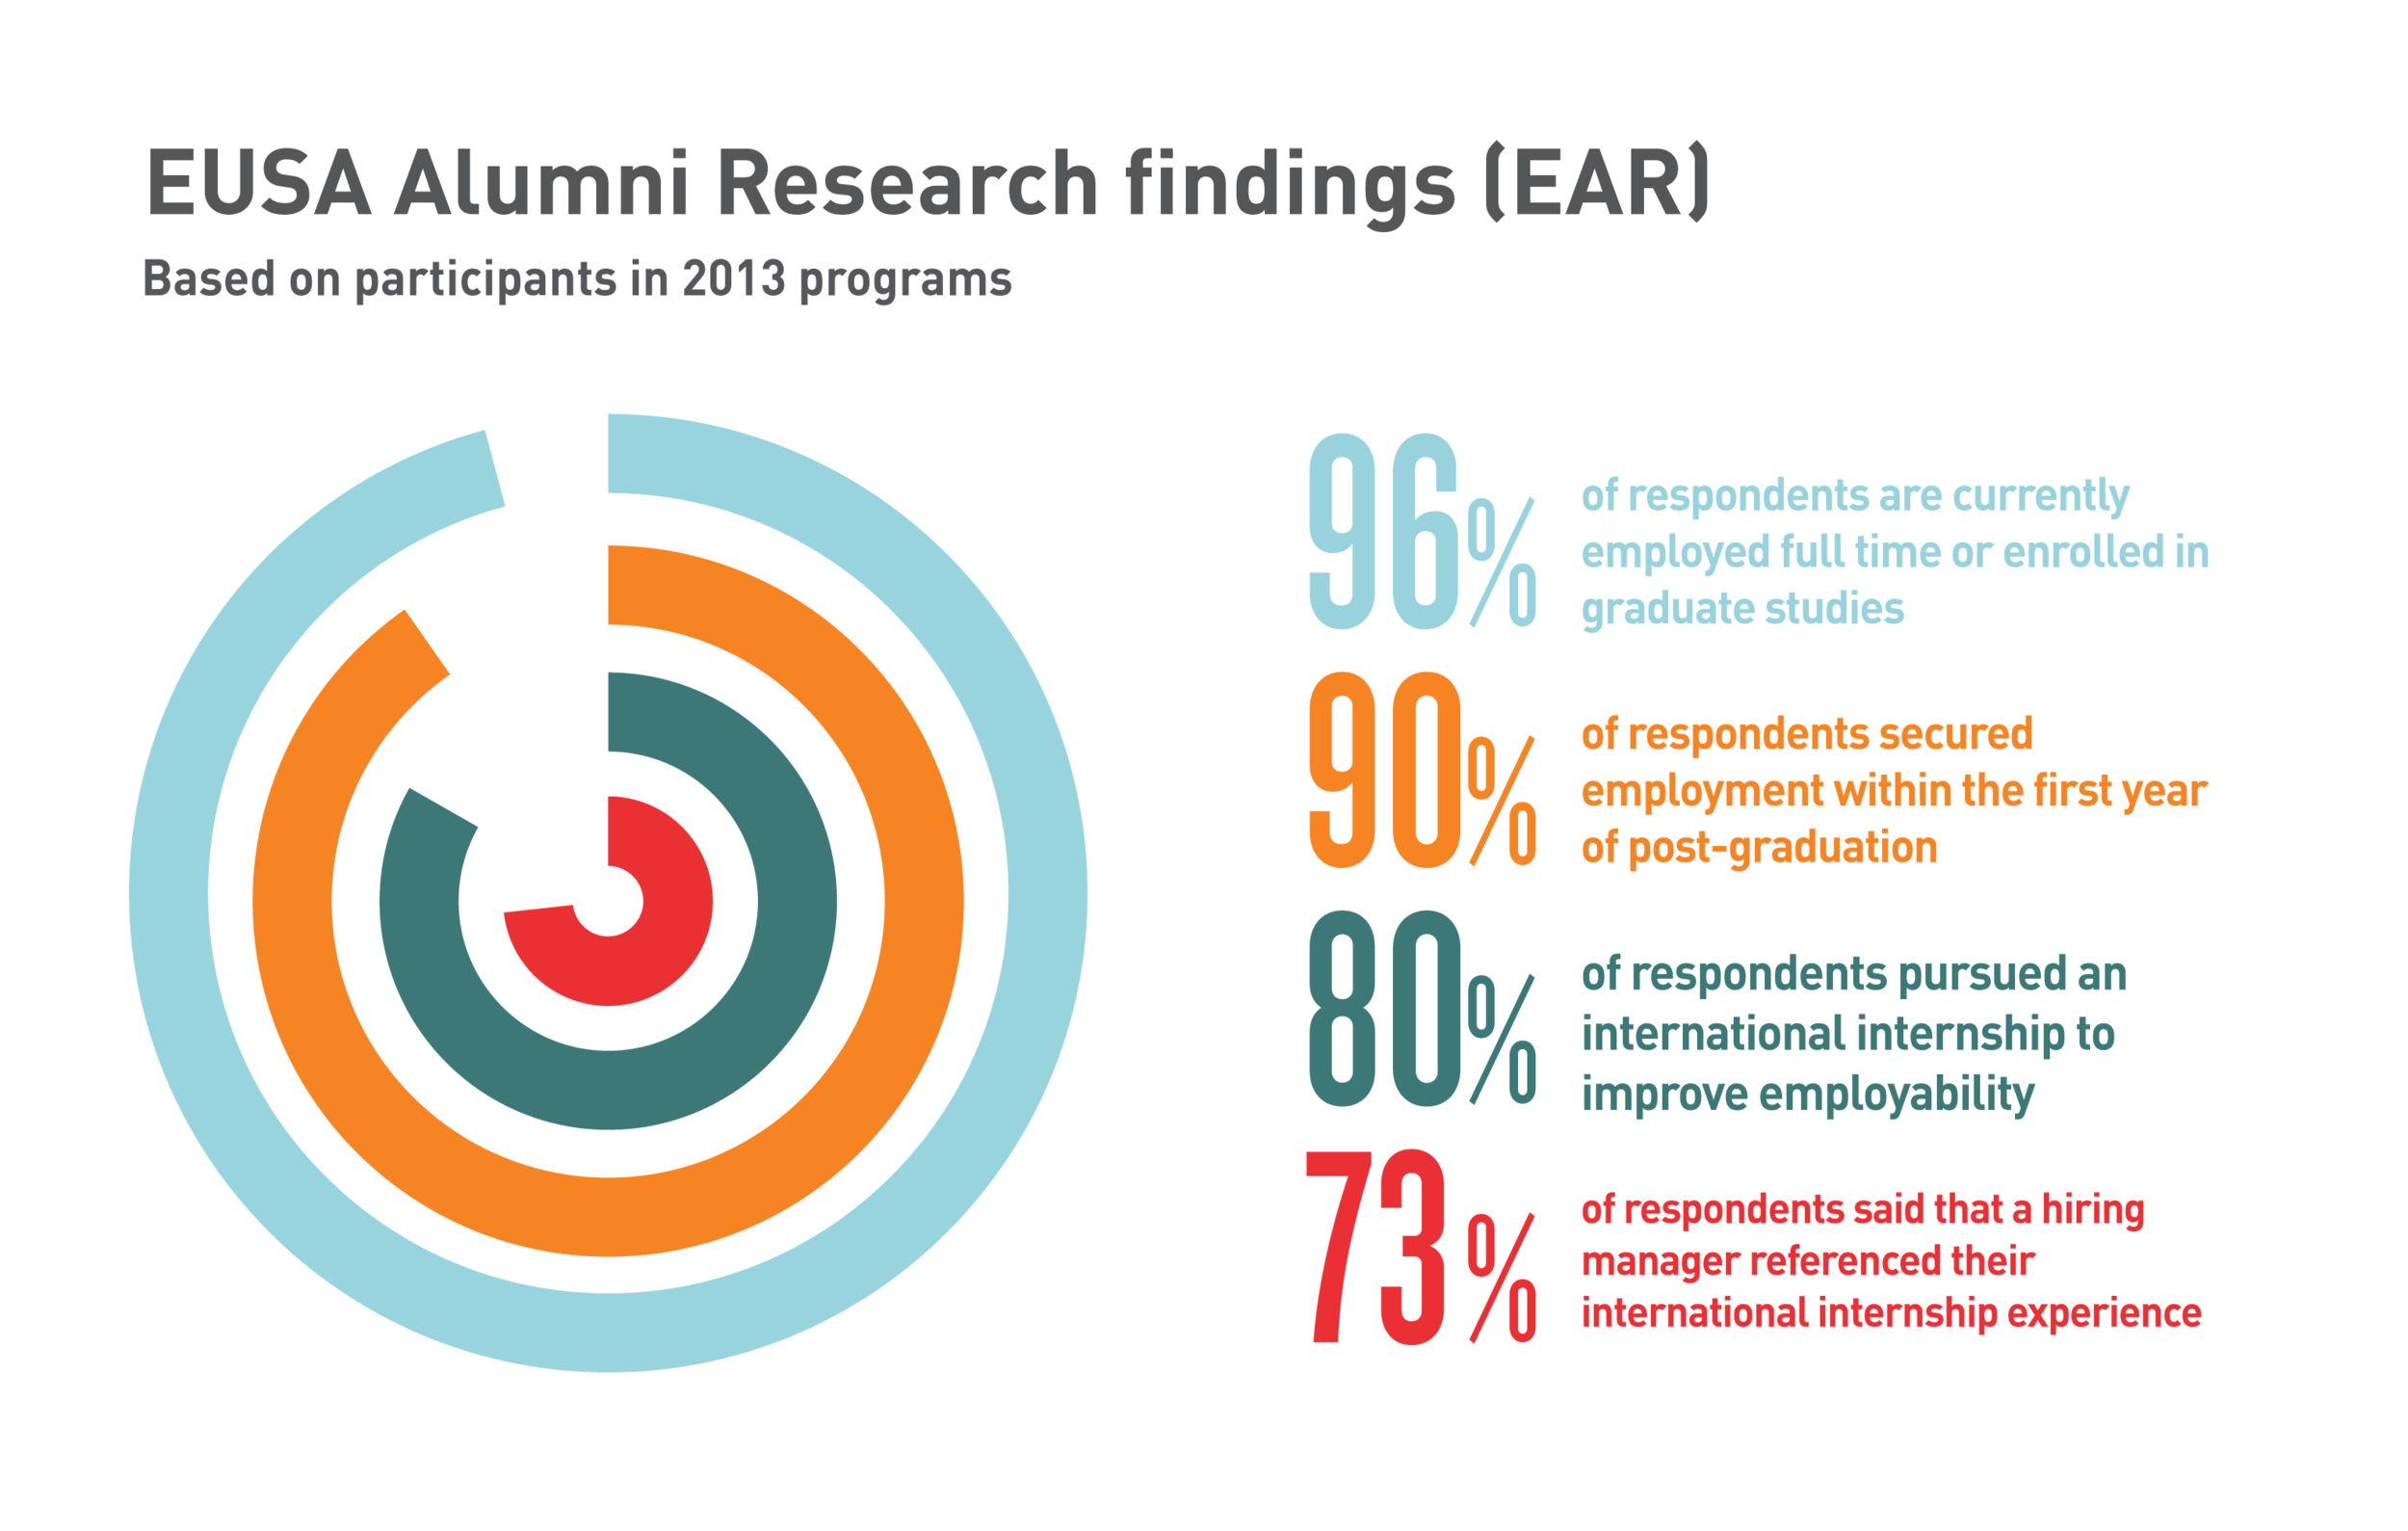 EUSA Alumni Research findings infographic